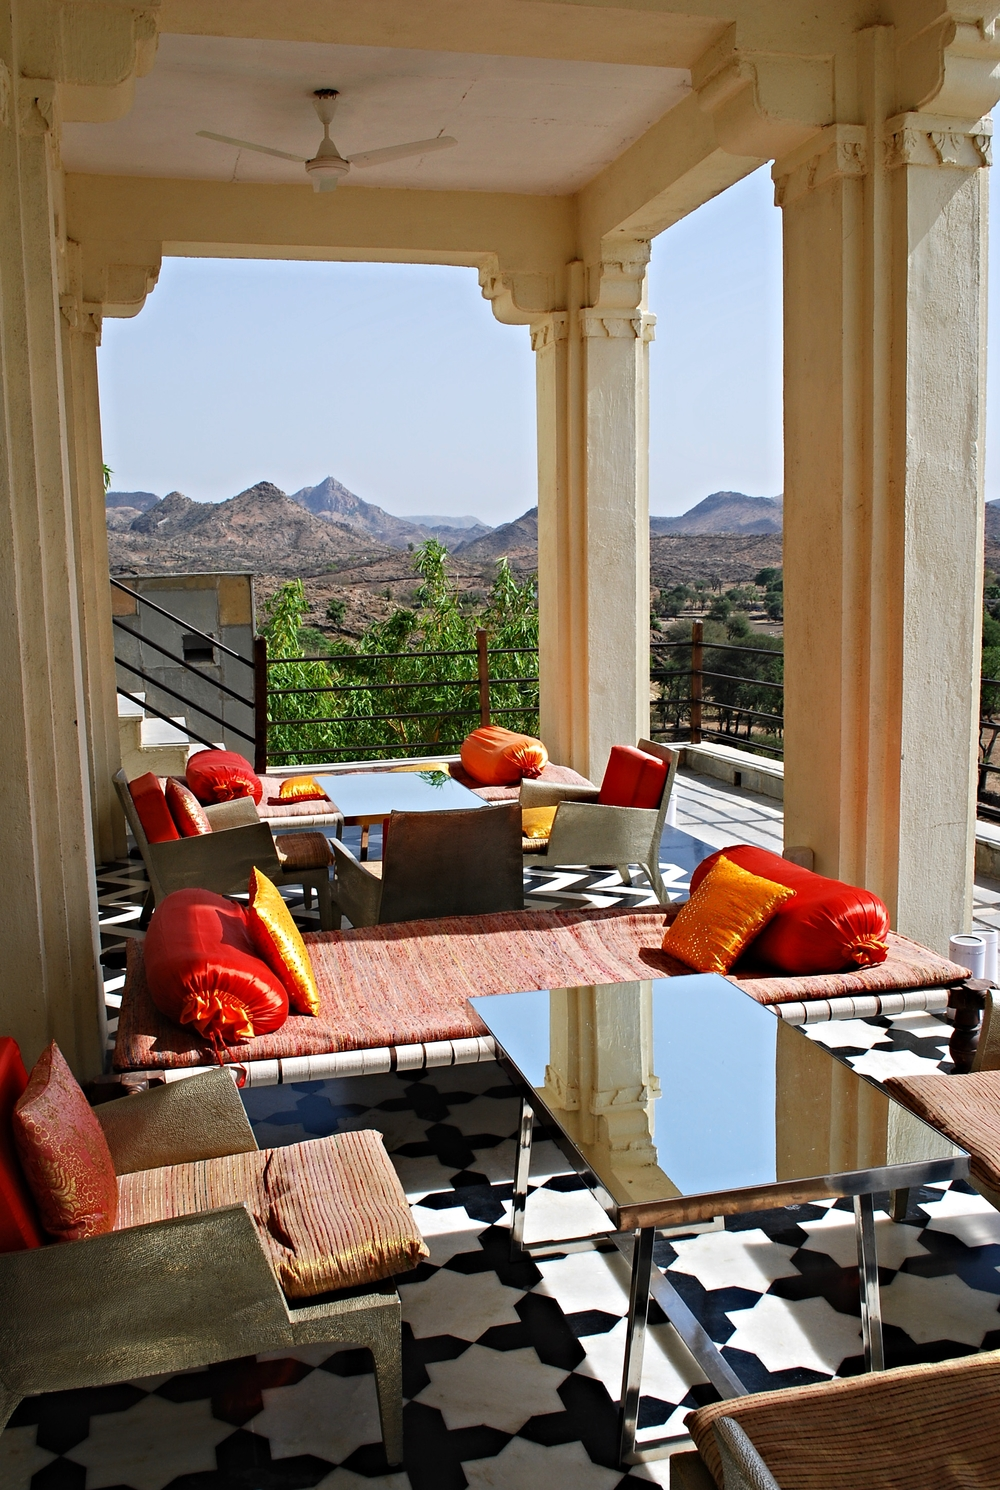 The roof terrace at Devi Garh, Udaipur.